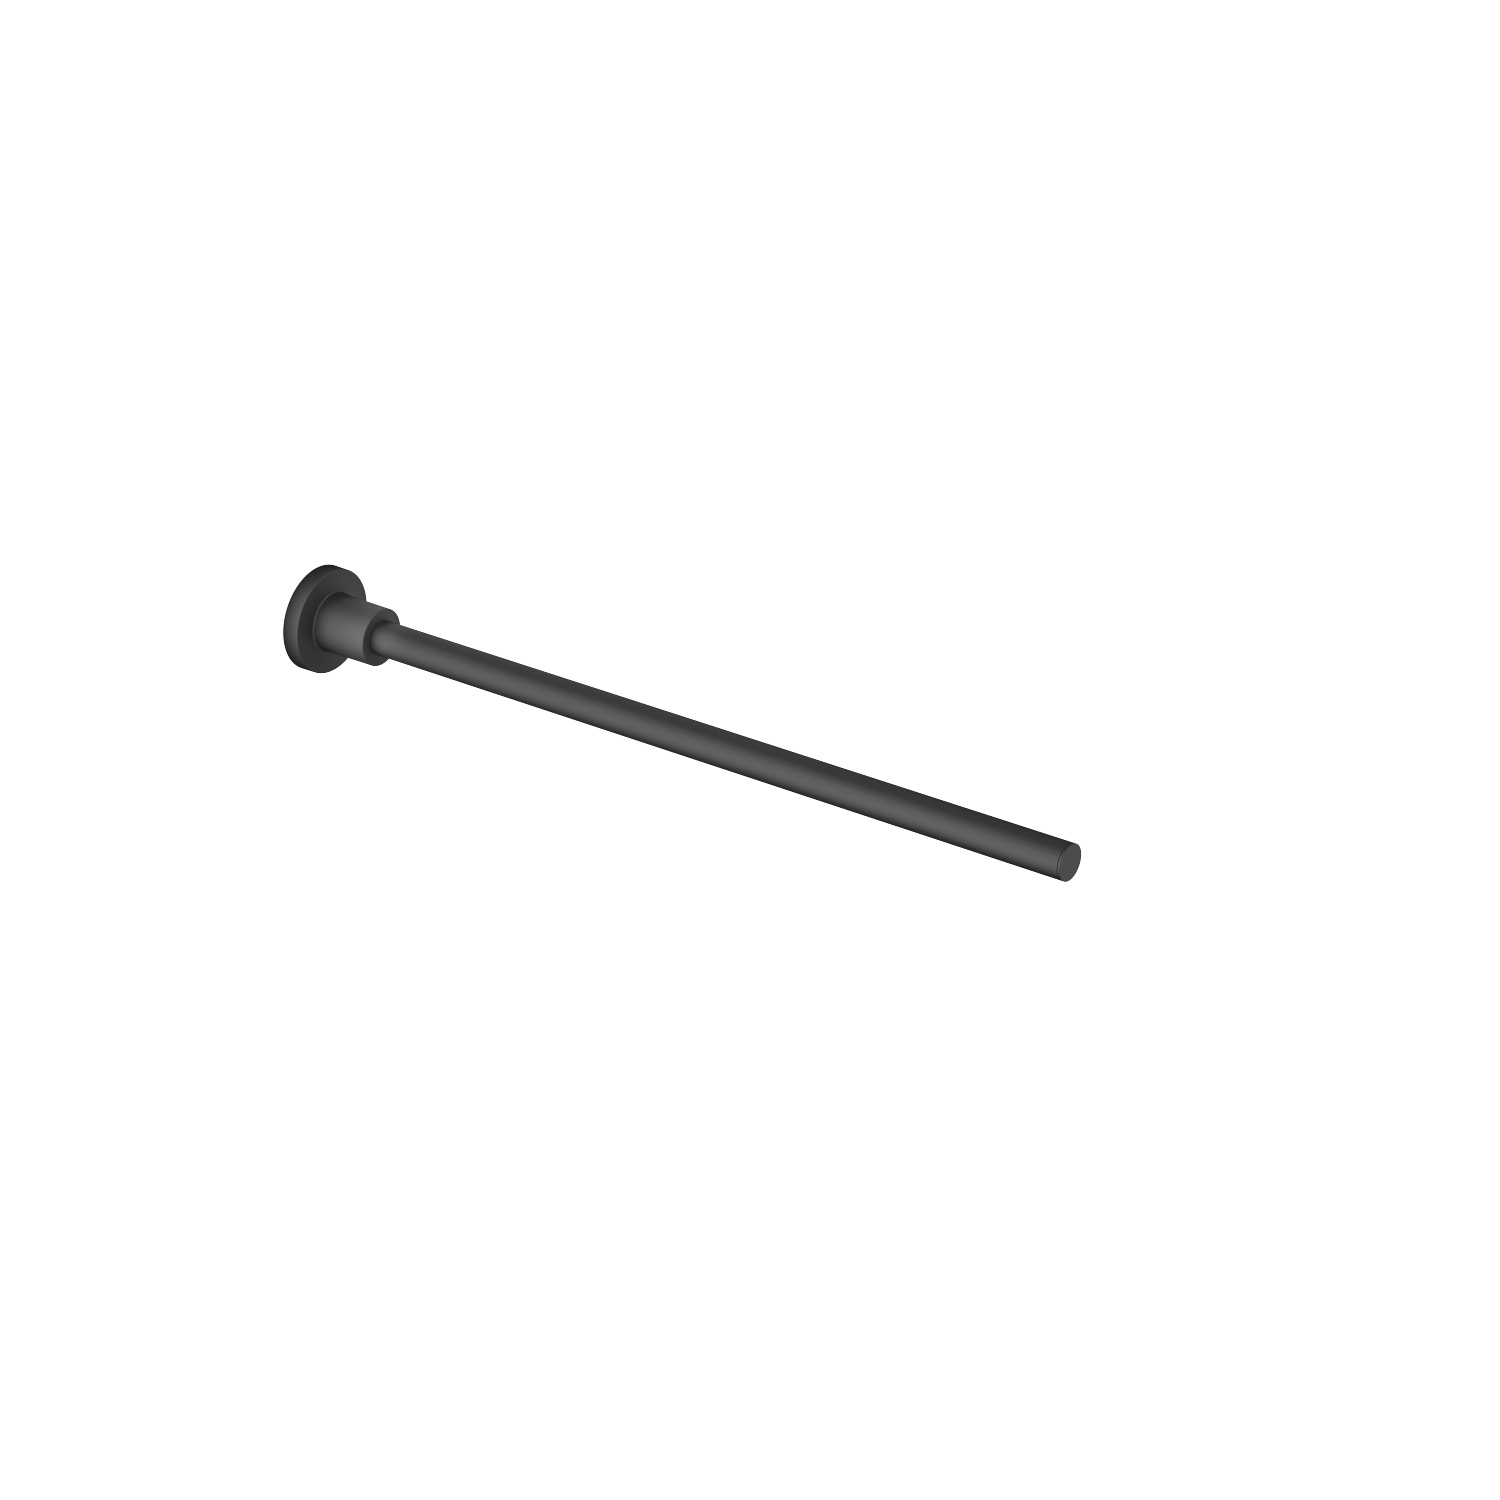 Towel bar single-arm fixed - black matte